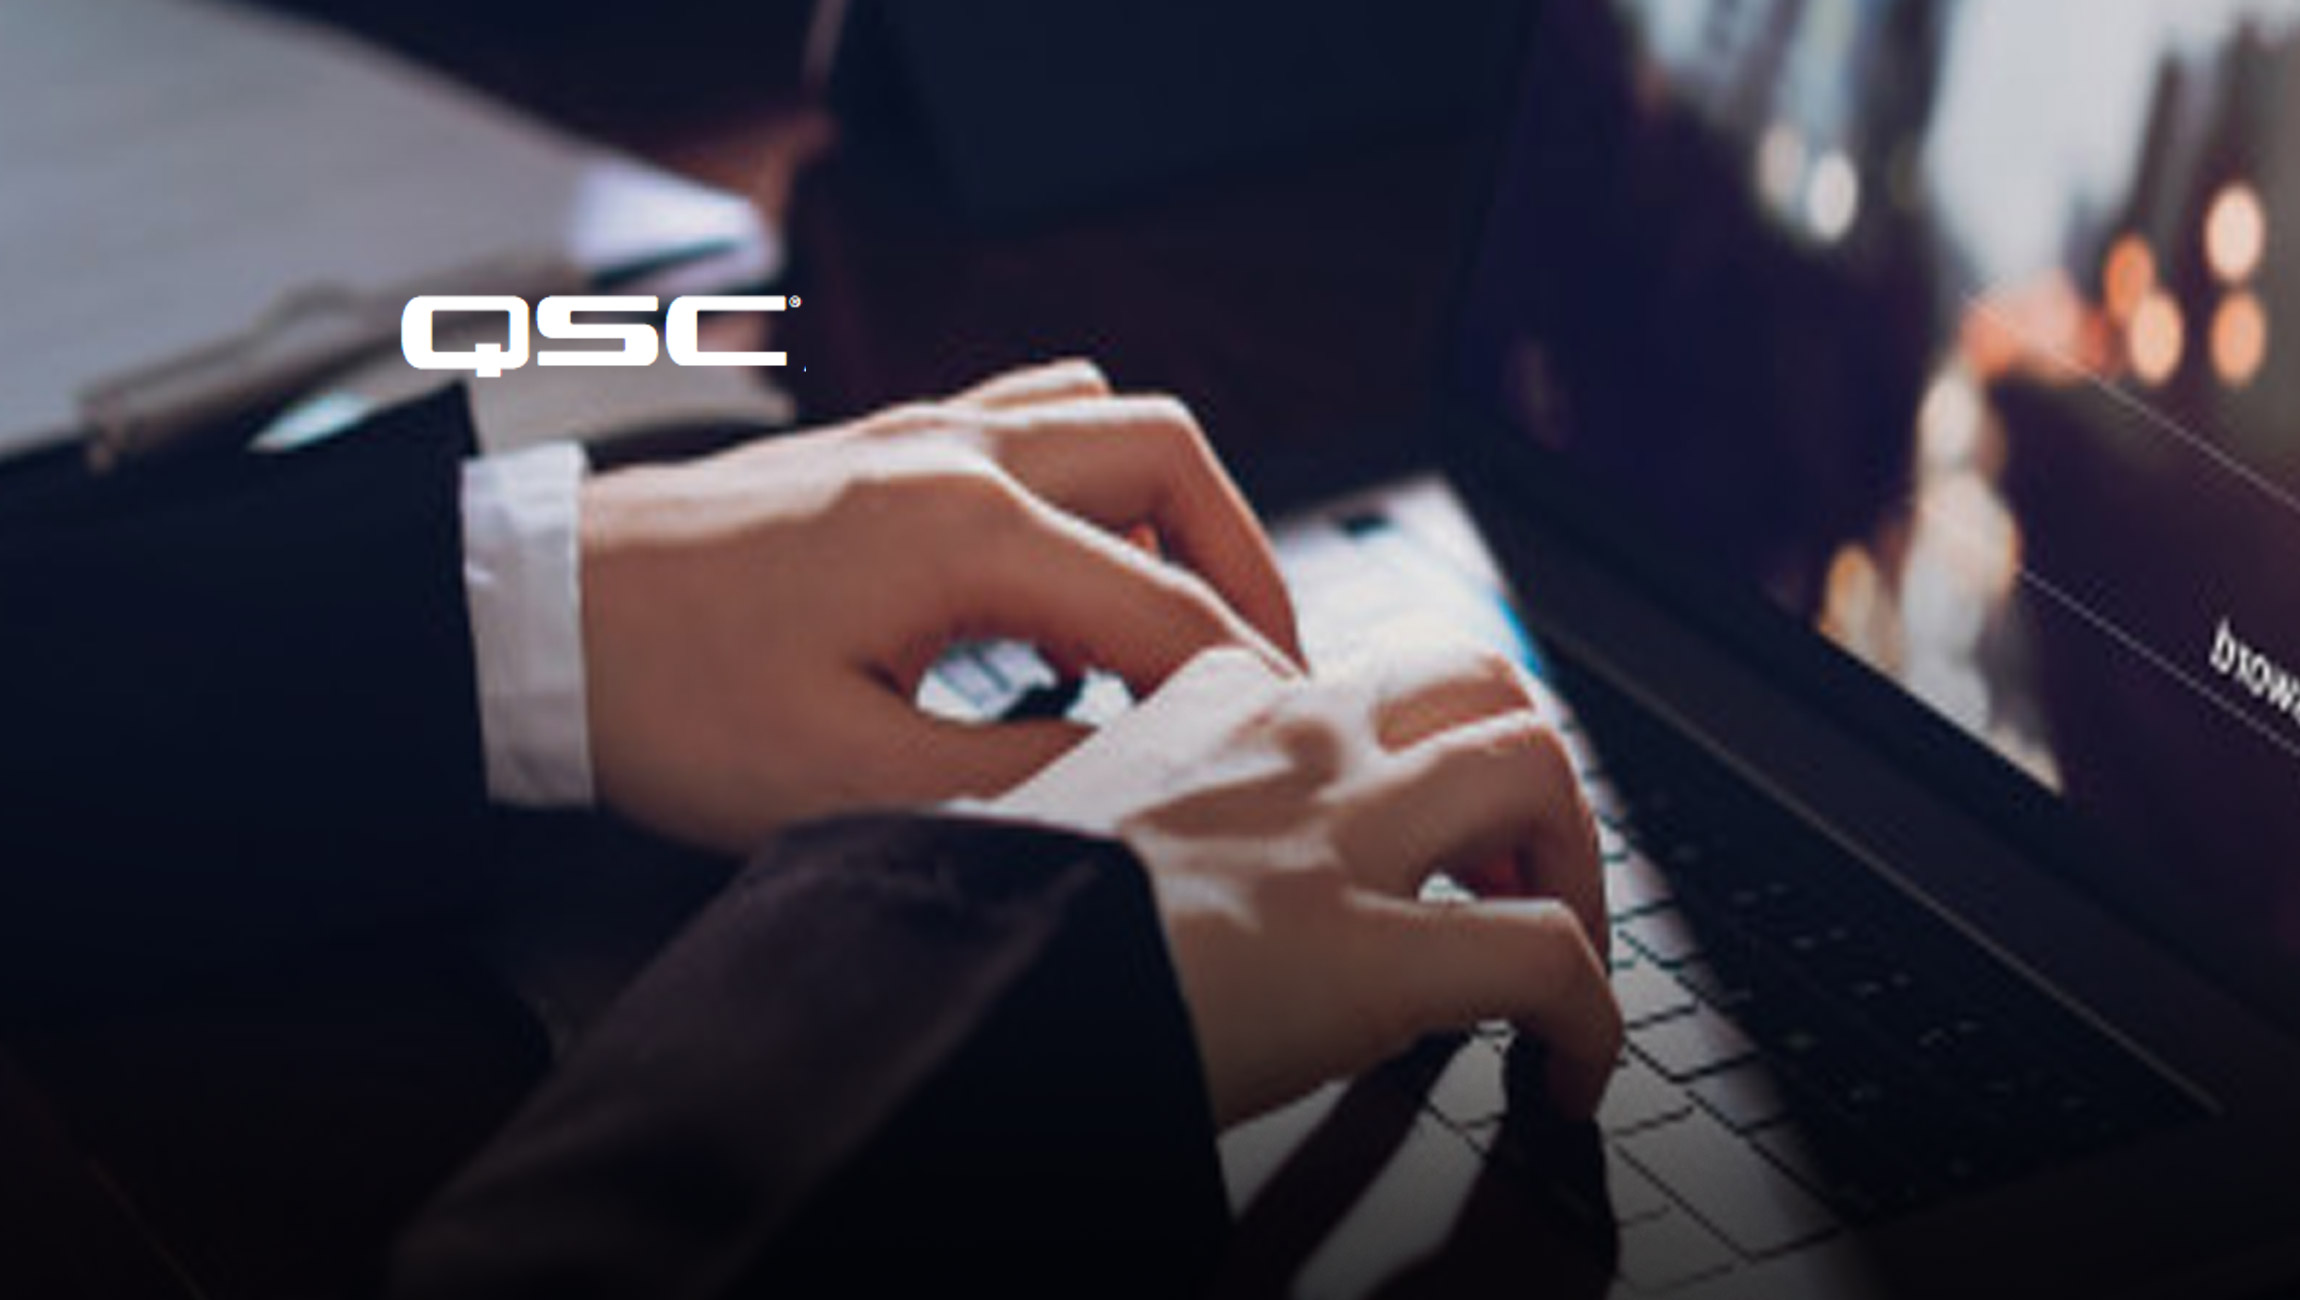 QSC Announces New Q-SYS Control Plugins to Simplify Meeting Room Device Integration